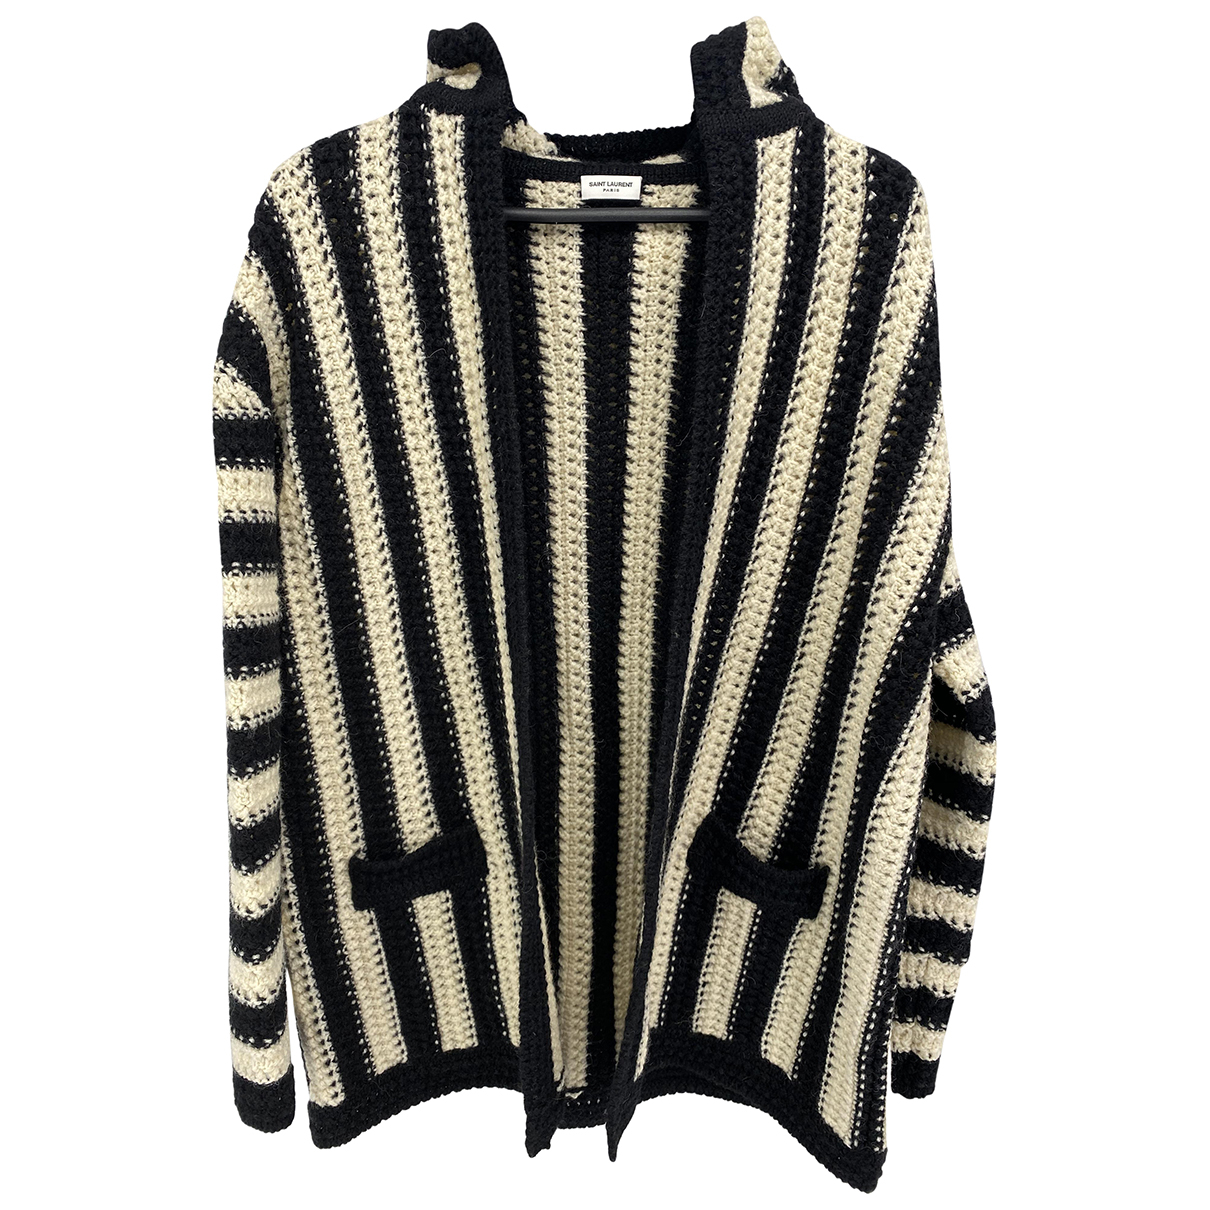 Saint Laurent N Ecru Wool Knitwear for Women M International